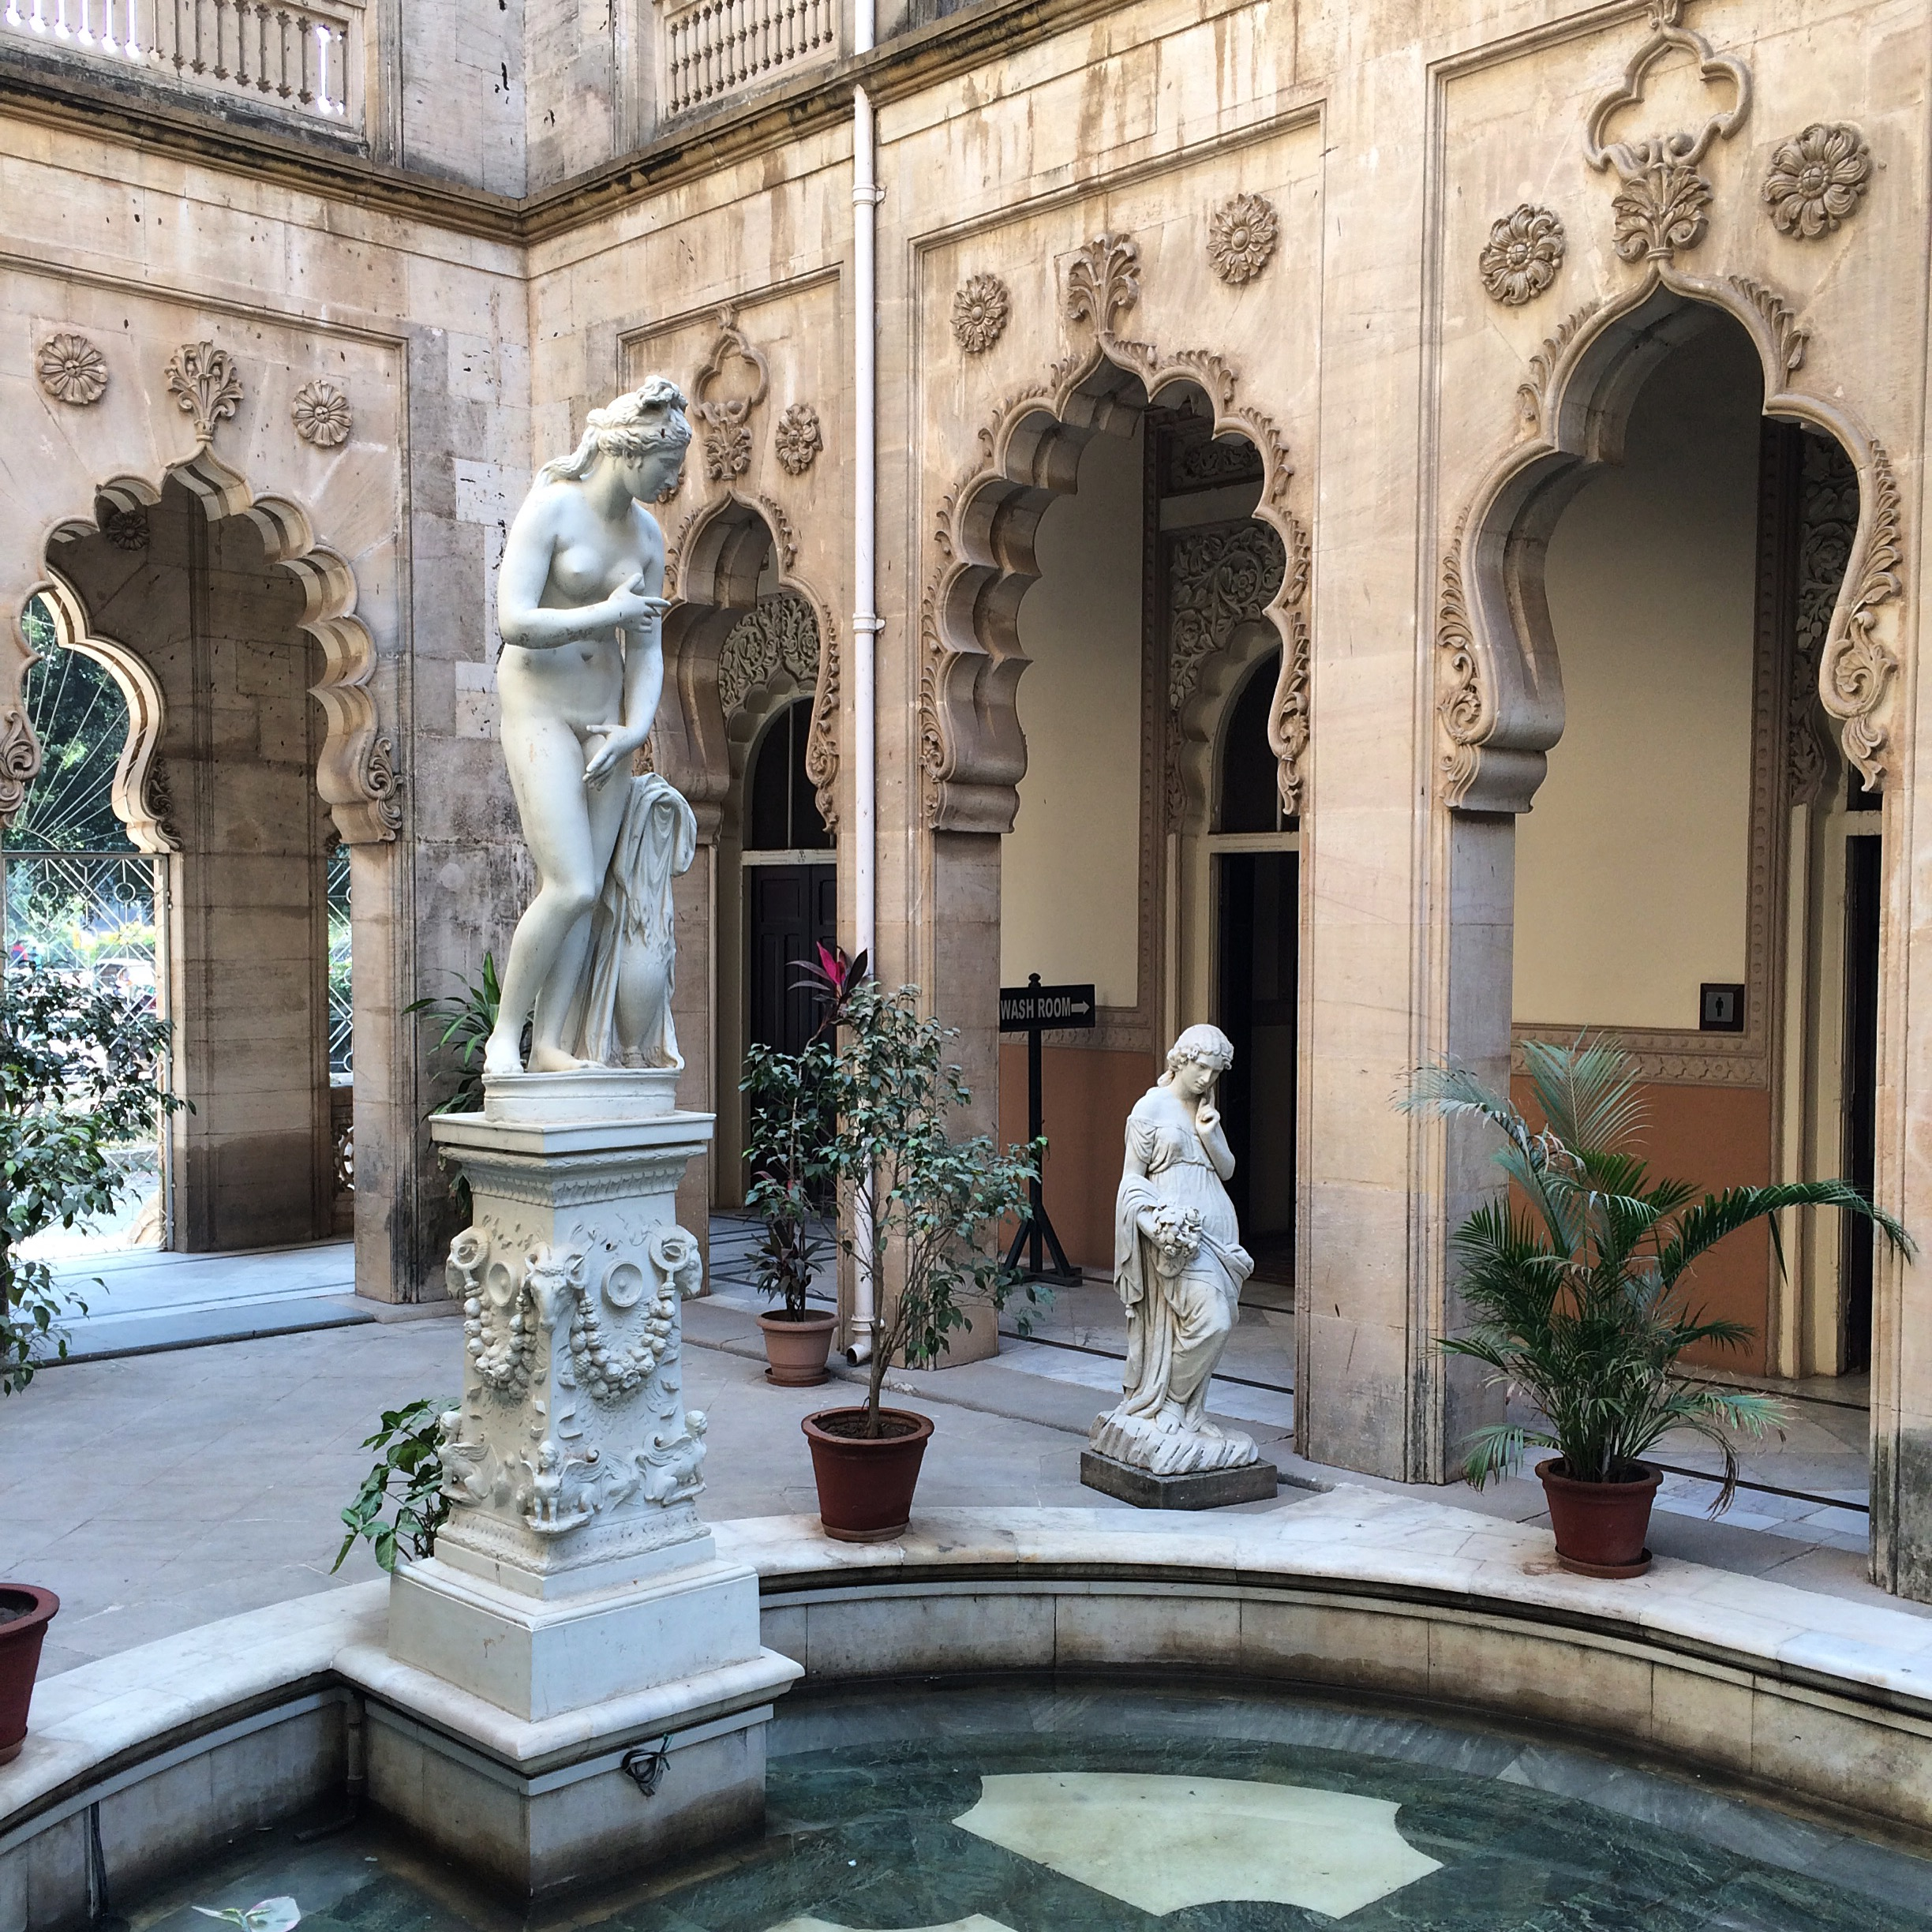 2.  The beautiful Italianate courtyard outside the Darbar Hall at Laxmi Vilas Palace in Vadodara, India.